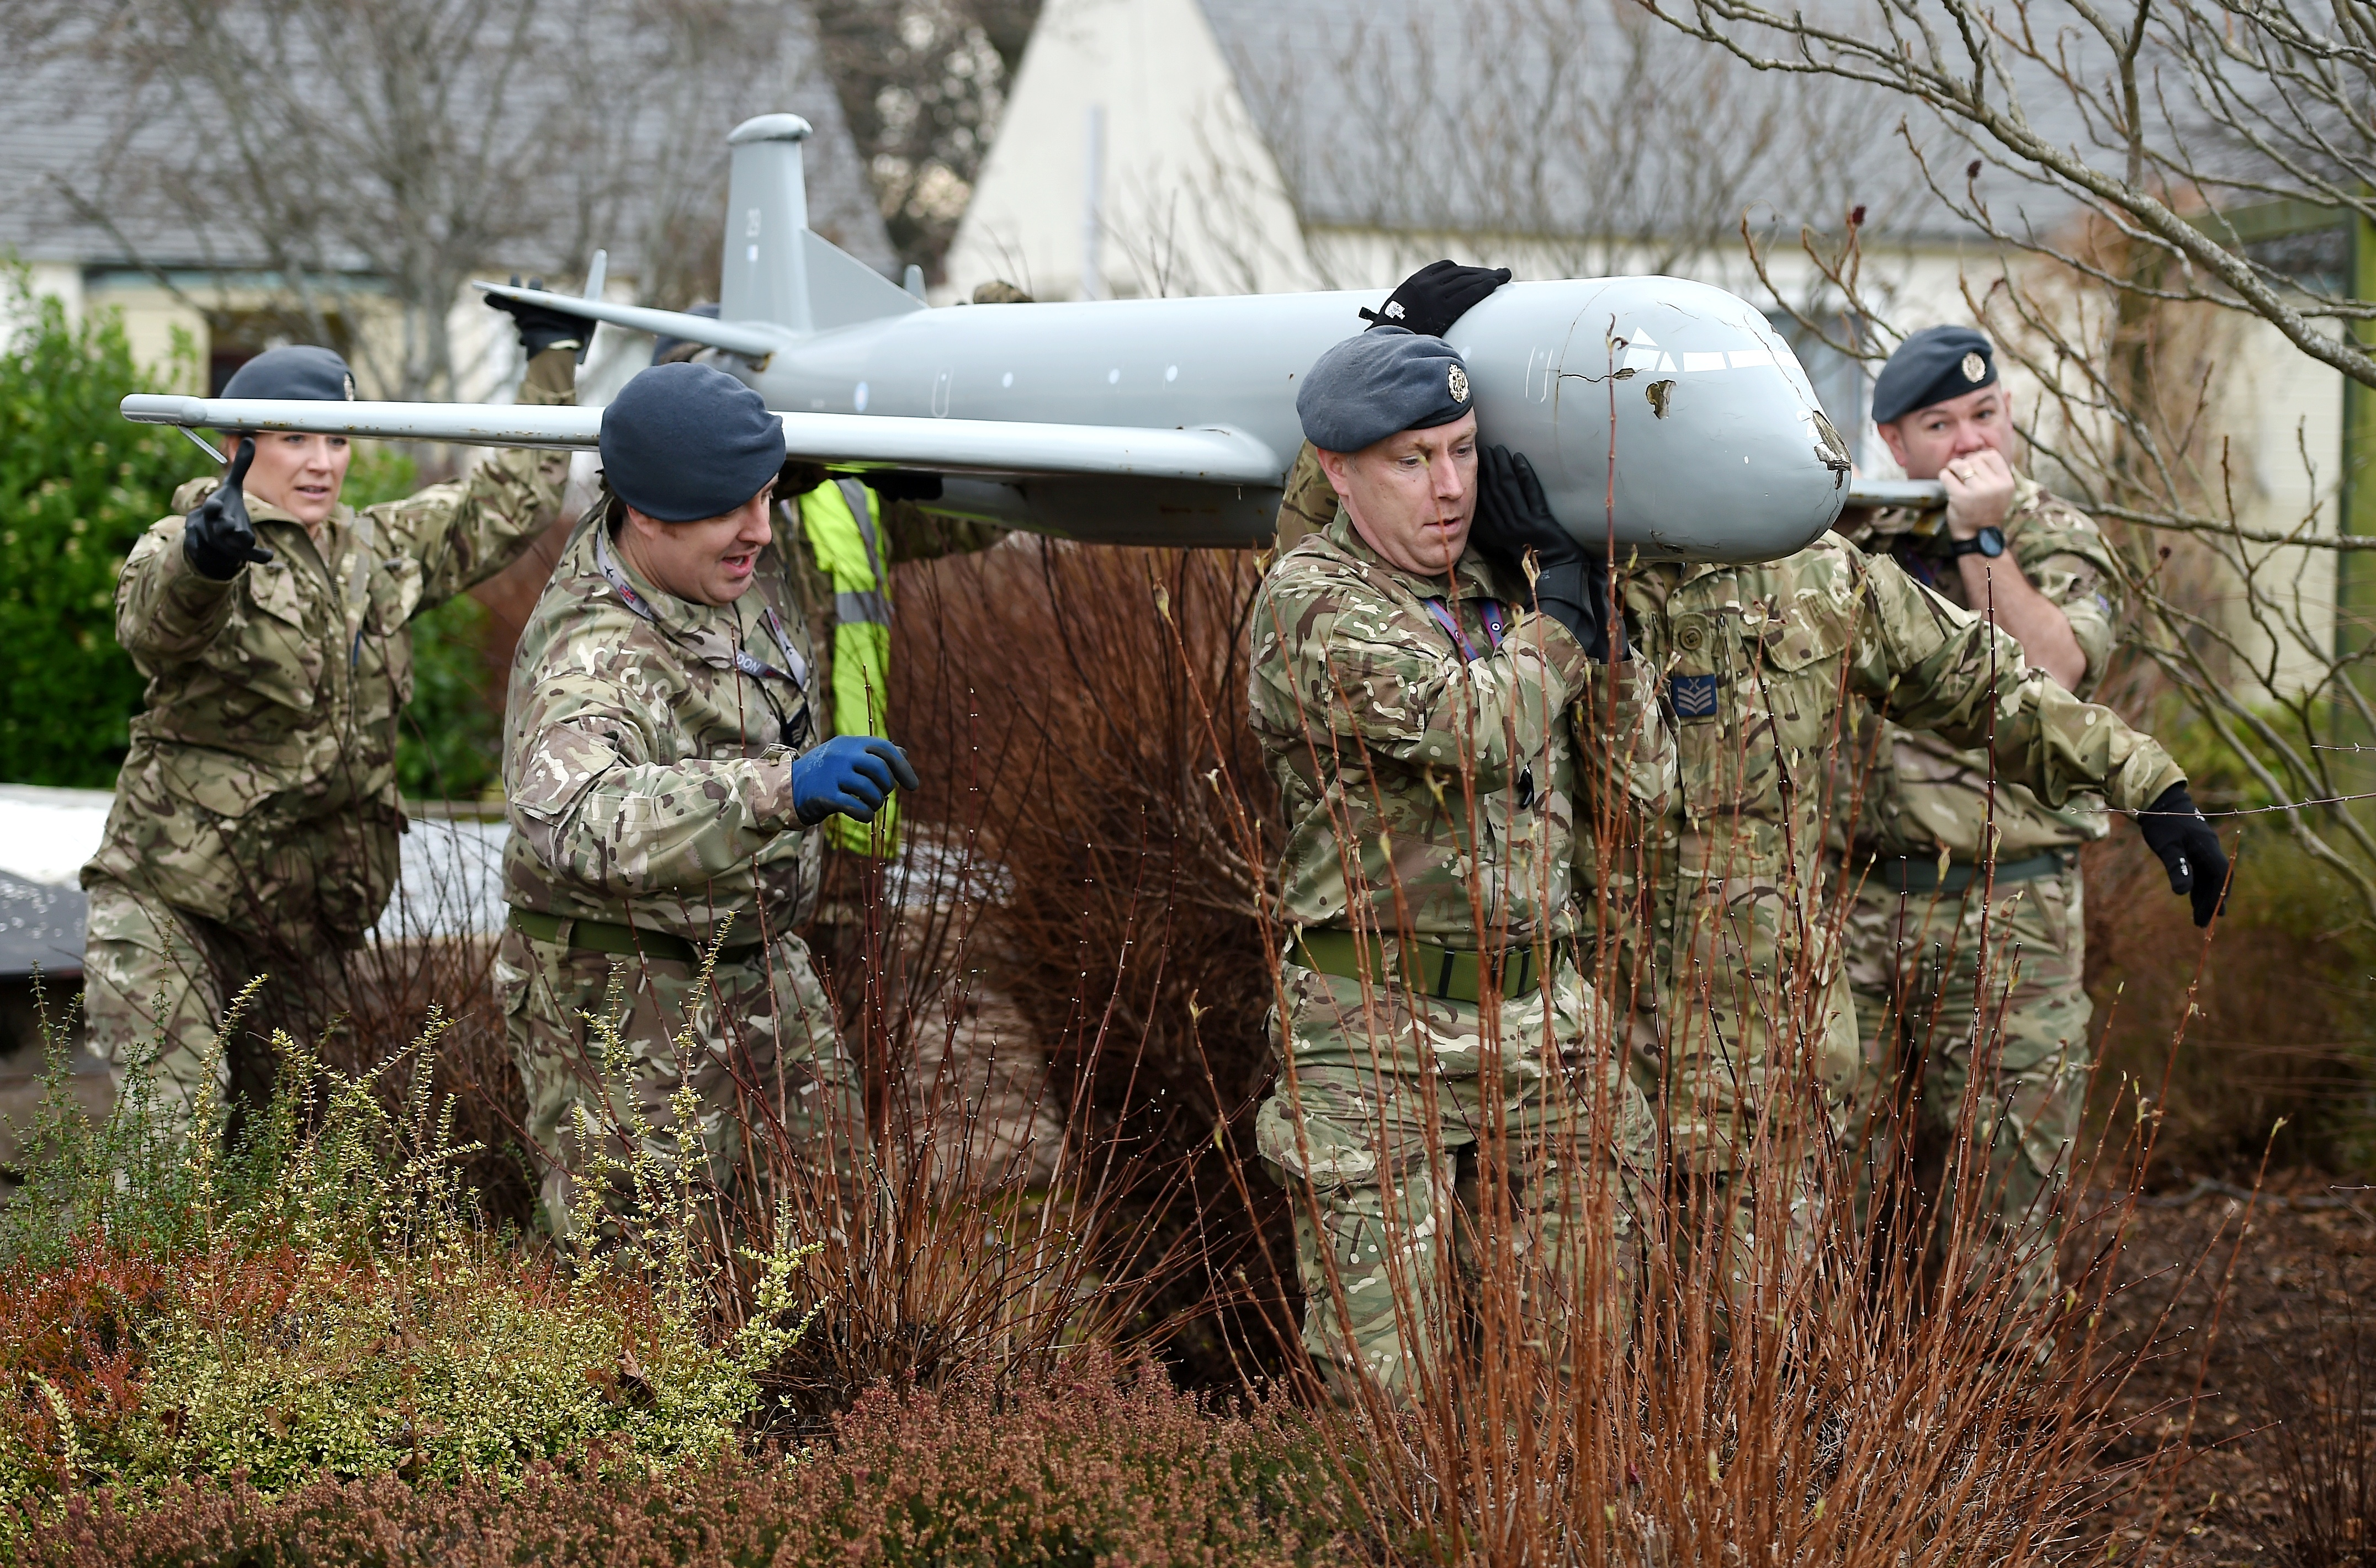 The model Nimrod from the Veterans Garden, Roysvale Park, Forres was removed yesterday by a team of engineers from RAF Lossiemouth for a three month refurbishment in their workshops on the base.